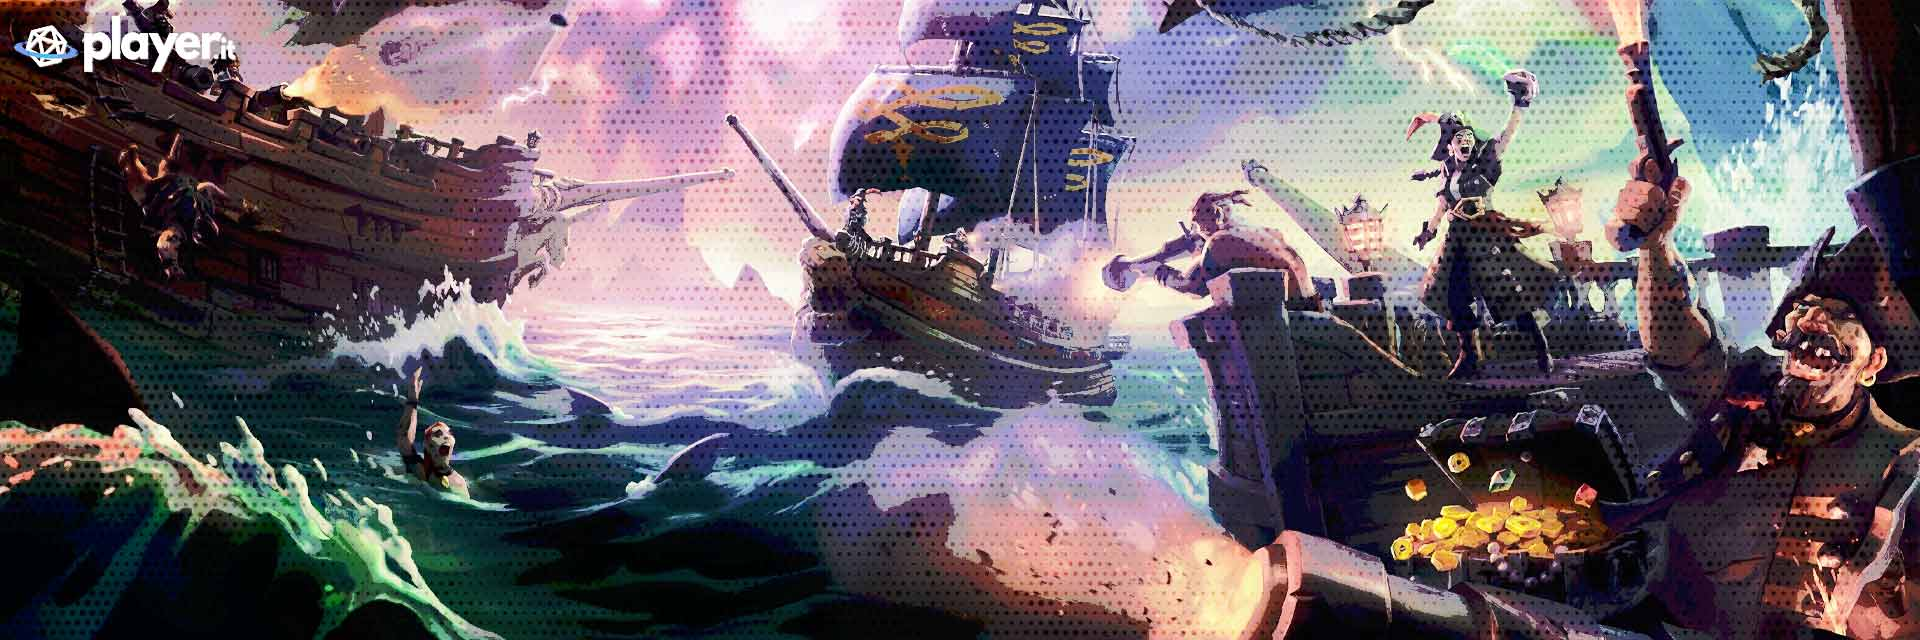 sea of thieves wallpaper in hd